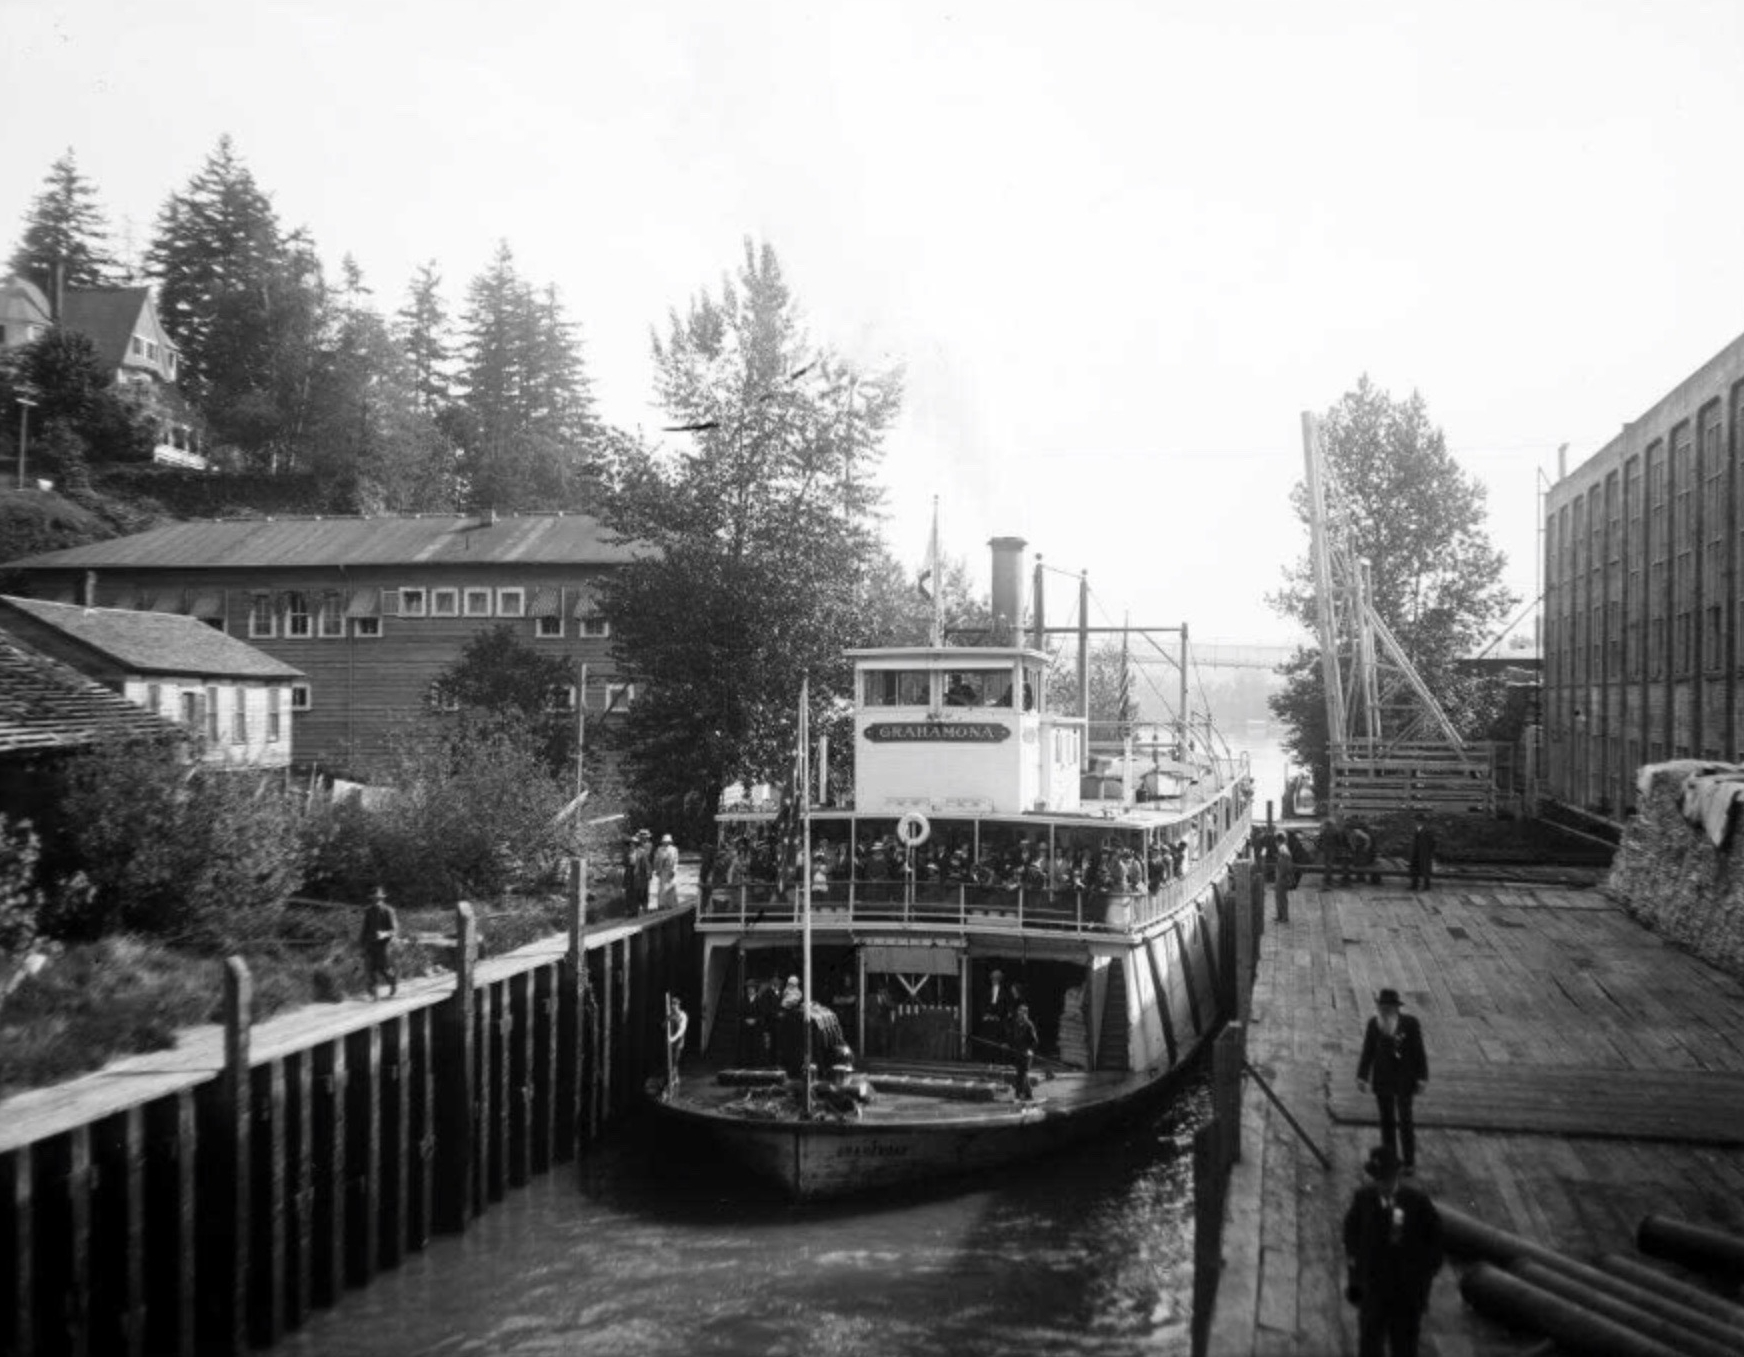 Source.   Stern-wheel steamboat Grahamona in the Willamette Falls locks, sometime between 1912 and 1918.